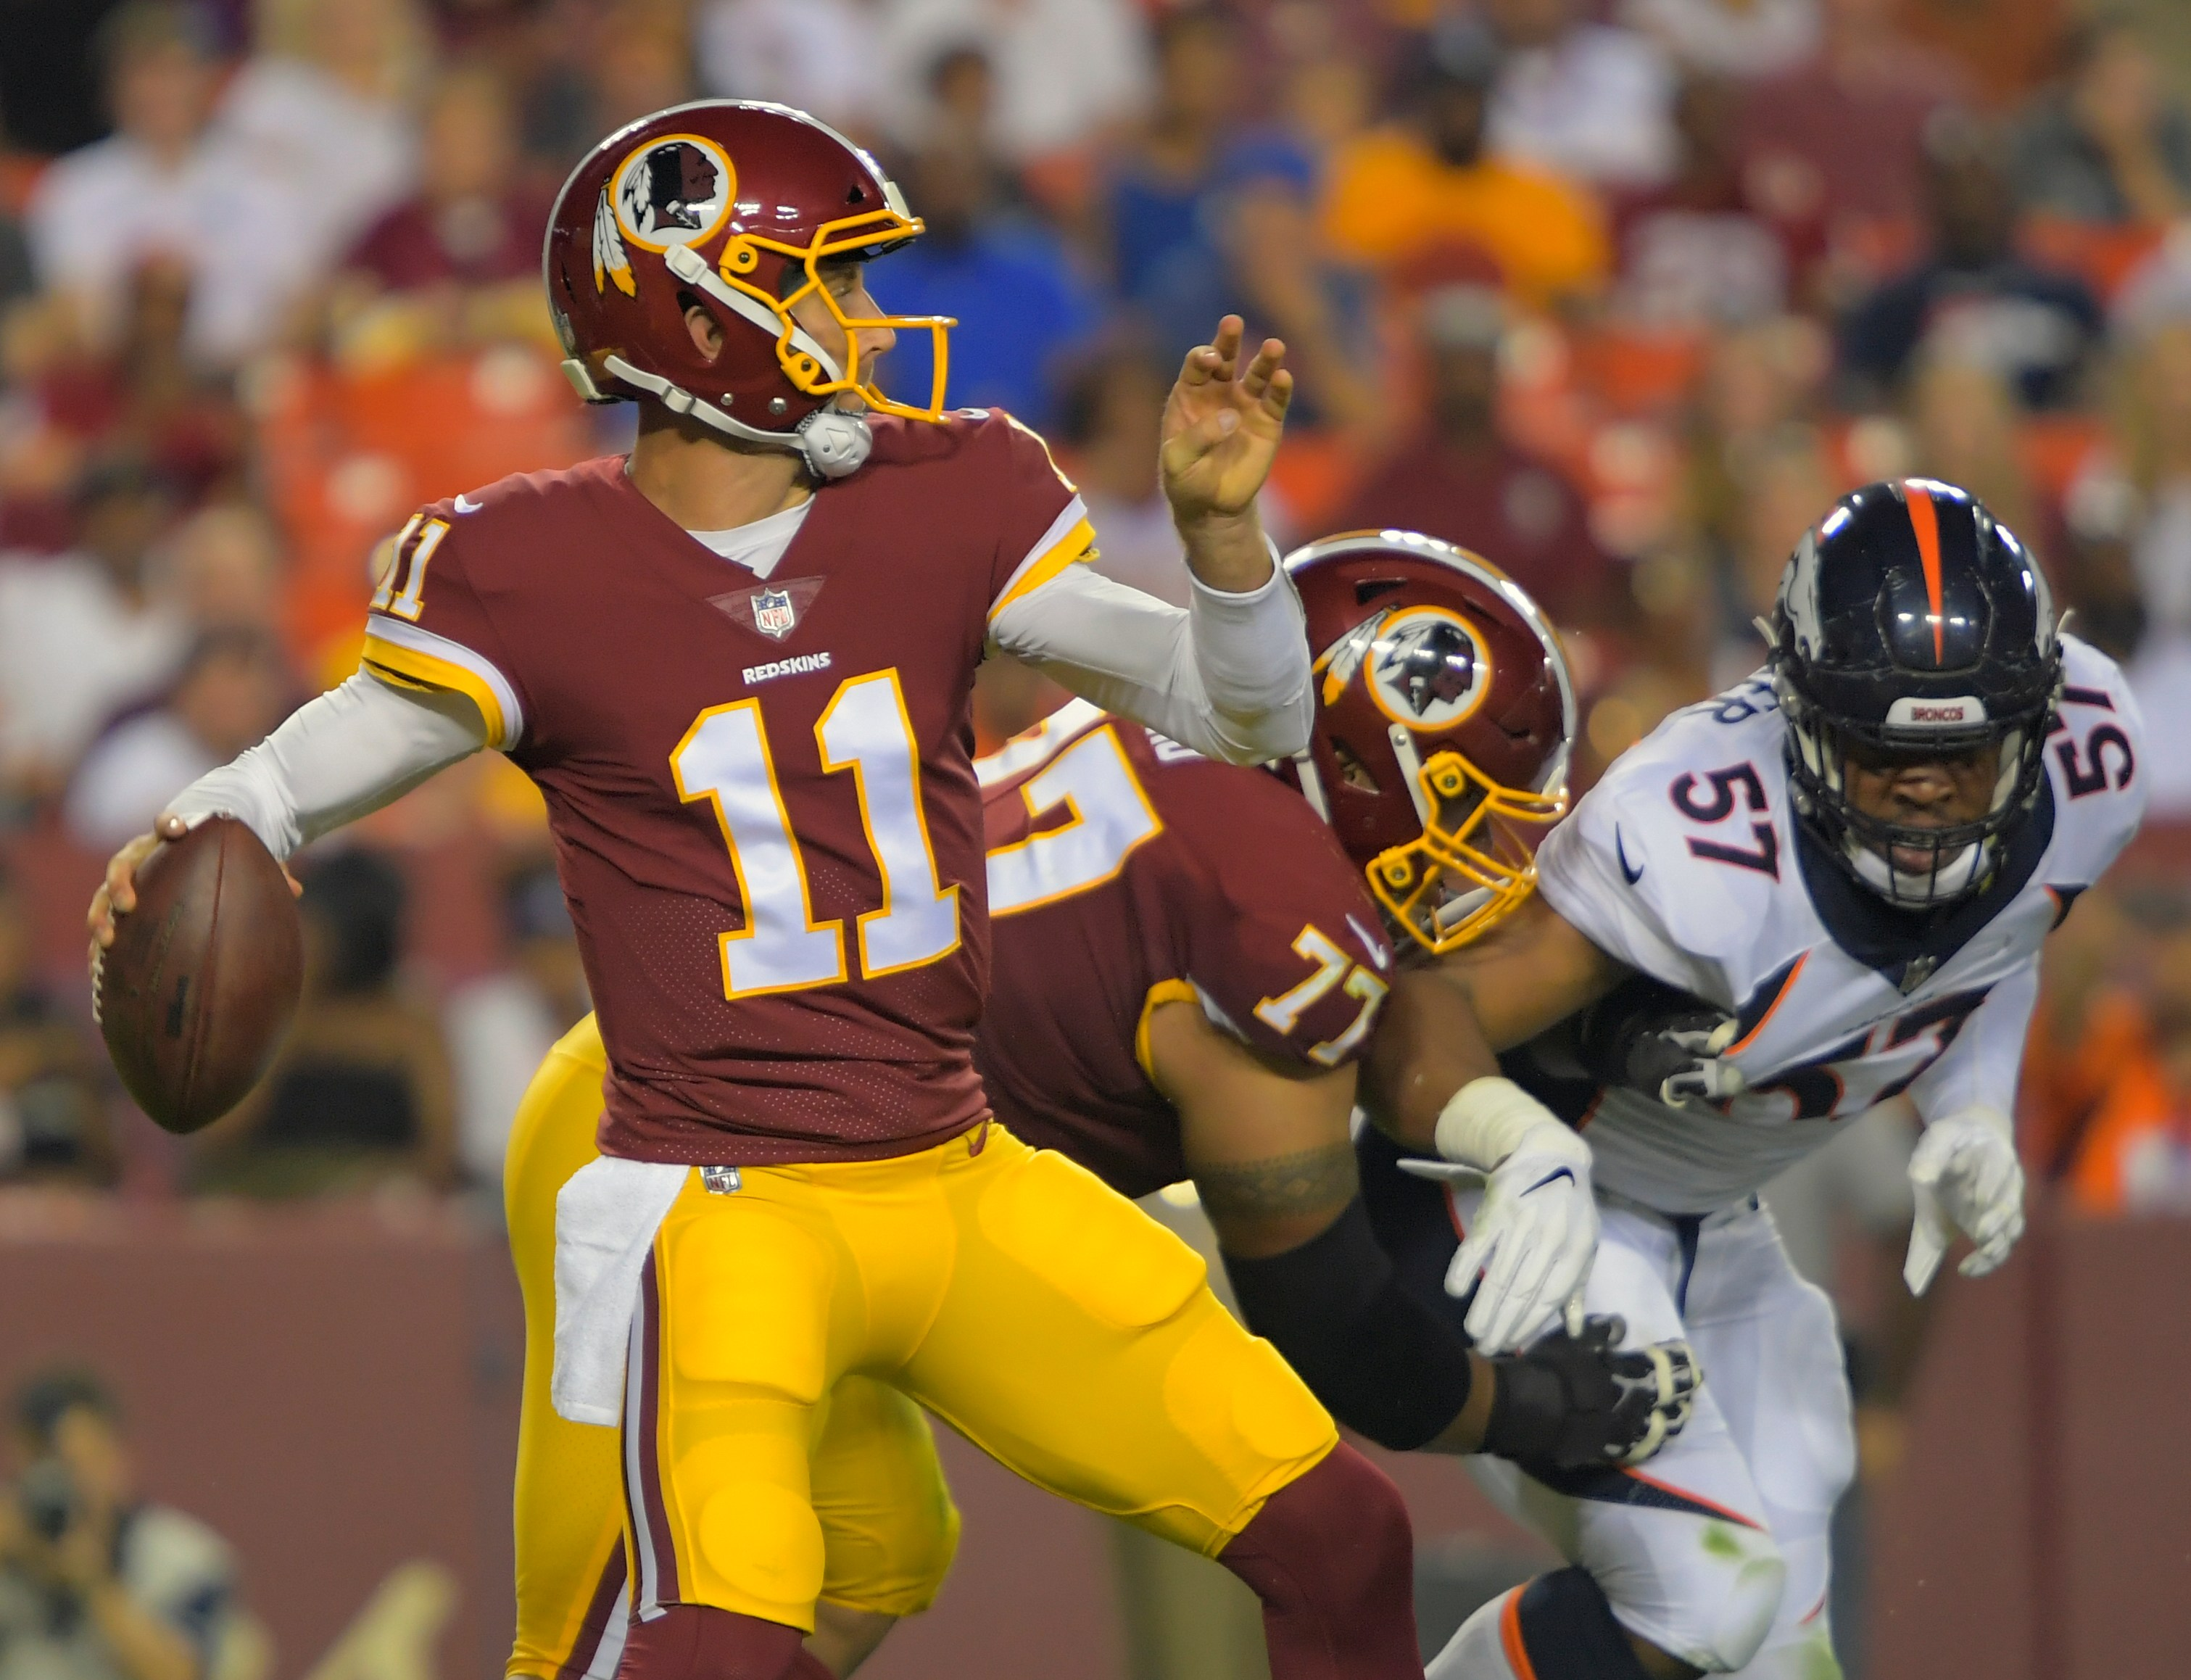 af6d7aa5 Four takeaways from the Redskins' preseason loss to the Broncos ...